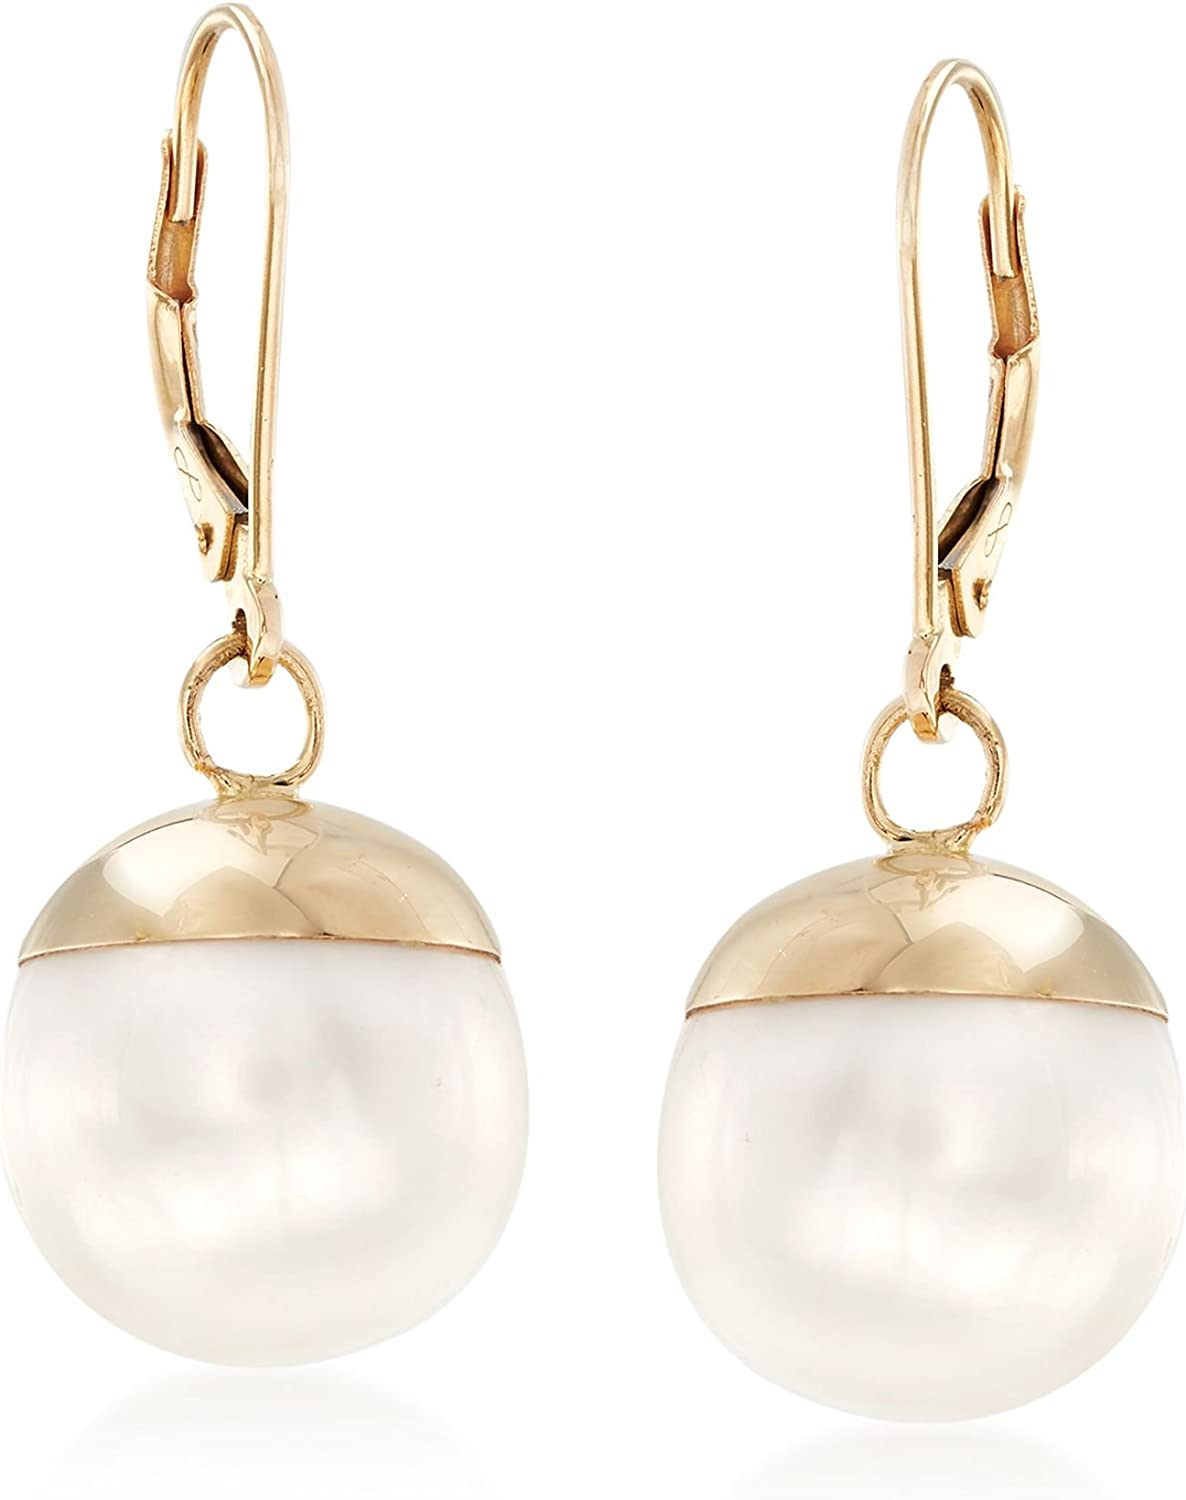 Ross-Simons 12-13mm Cultured Pearl Drop Earrings in 14kt Yellow Gold